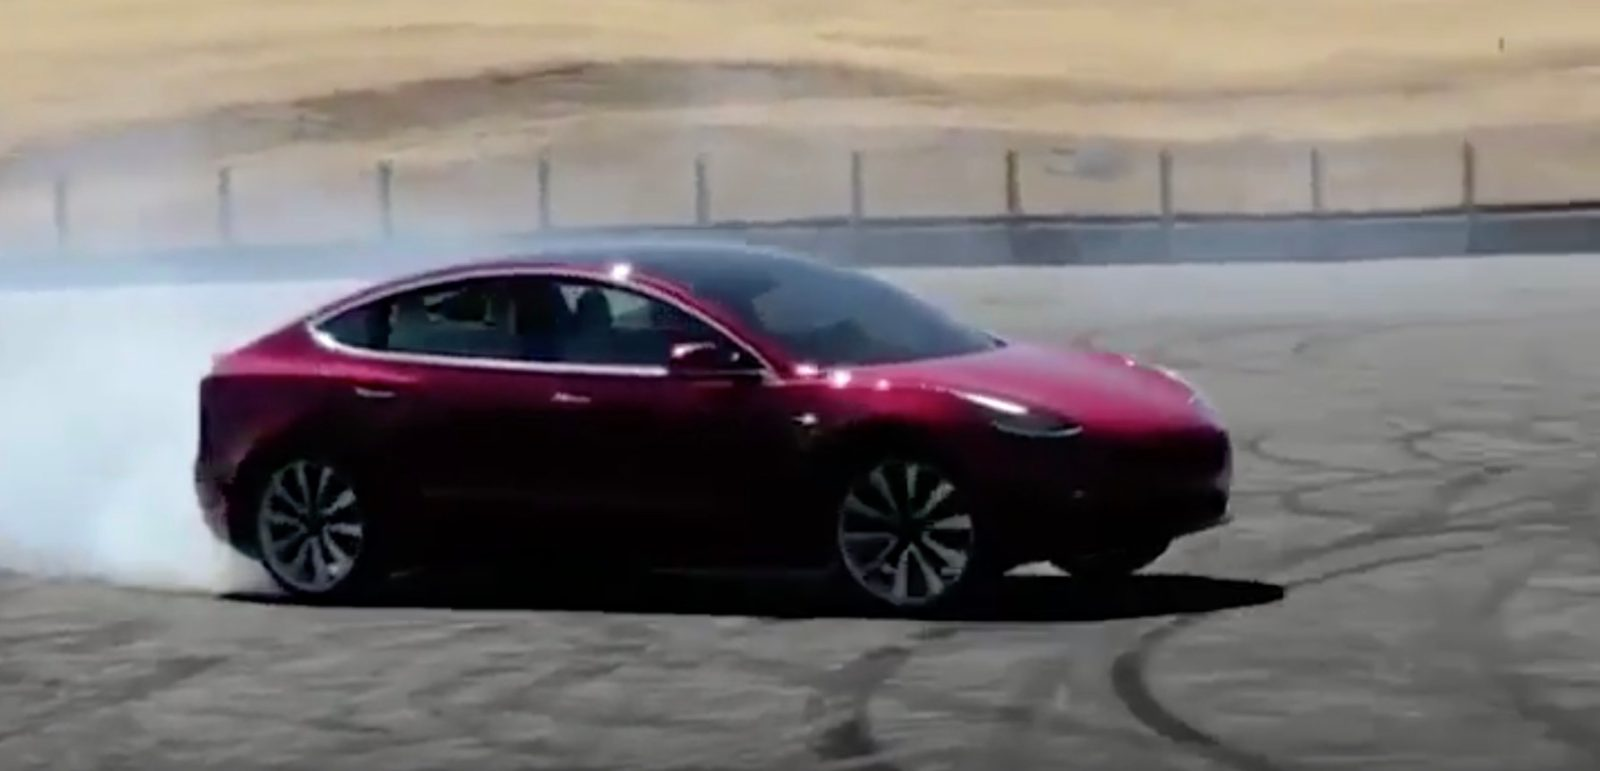 Tesla Releases First Video Of Model 3 Performance Version Burning Some Tires During Testing